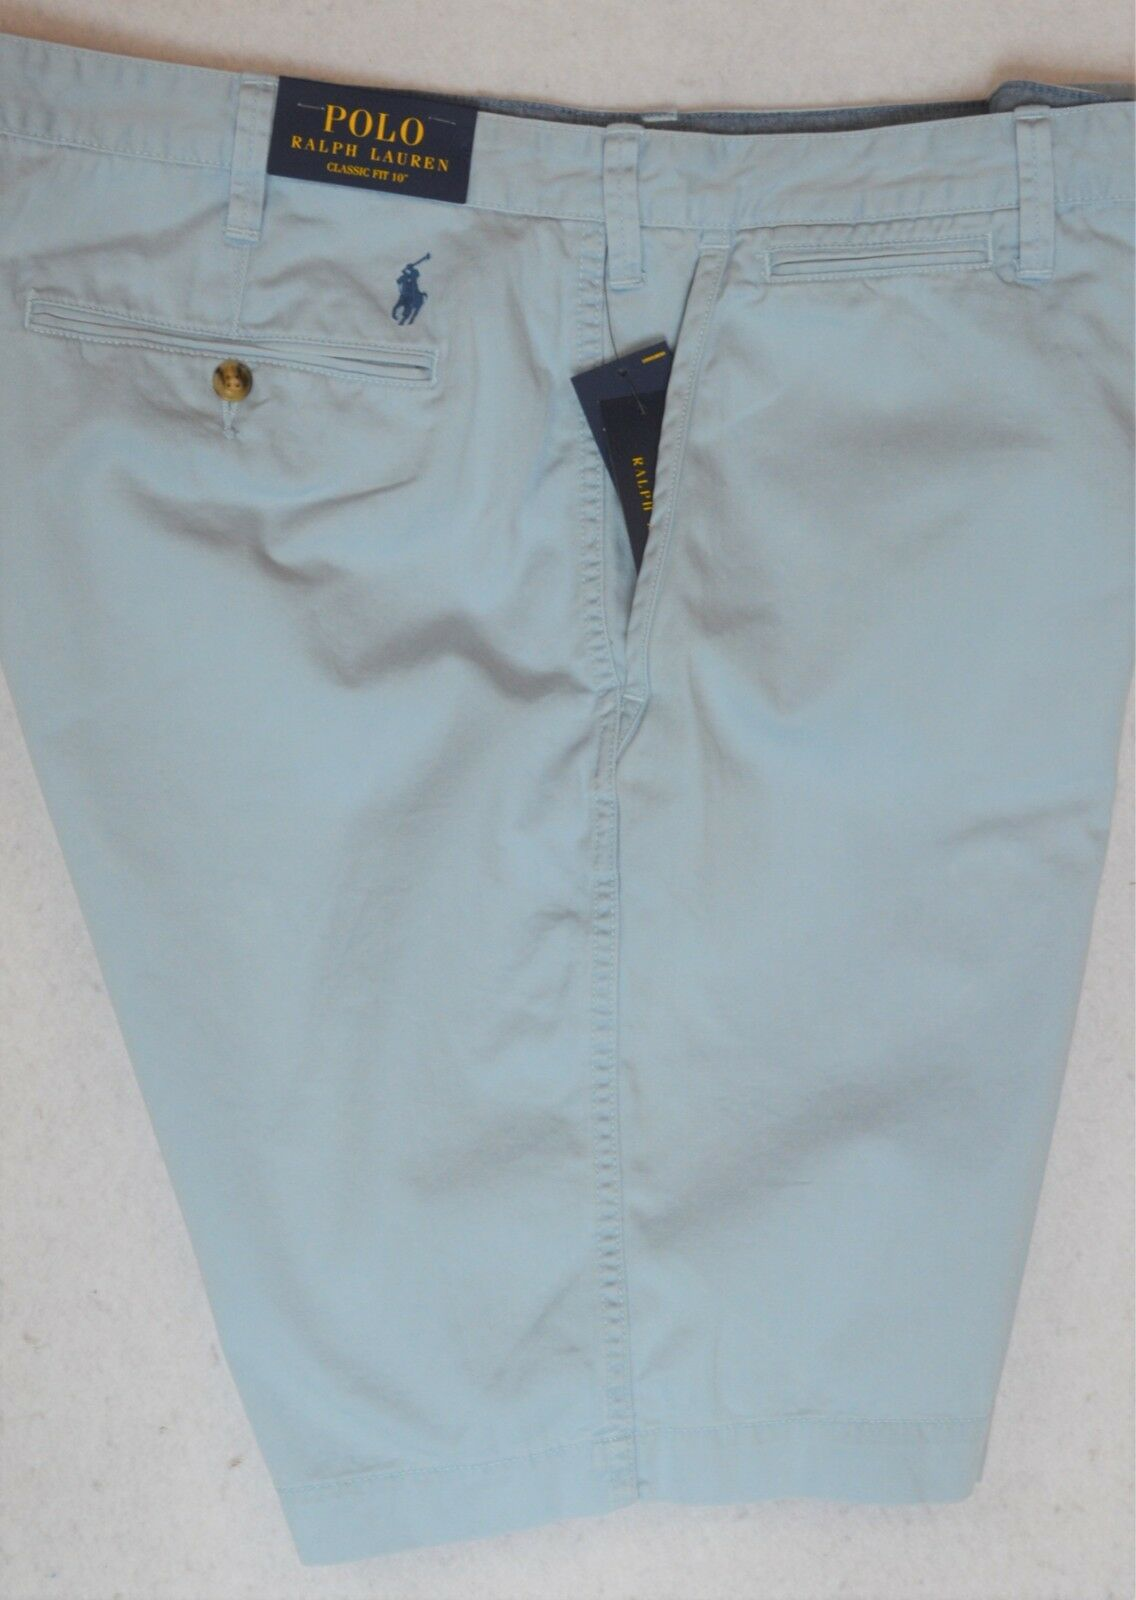 Polo Ralph Lauren Shorts Hampton bluee Classic Fit 10  44 46 48 NWT